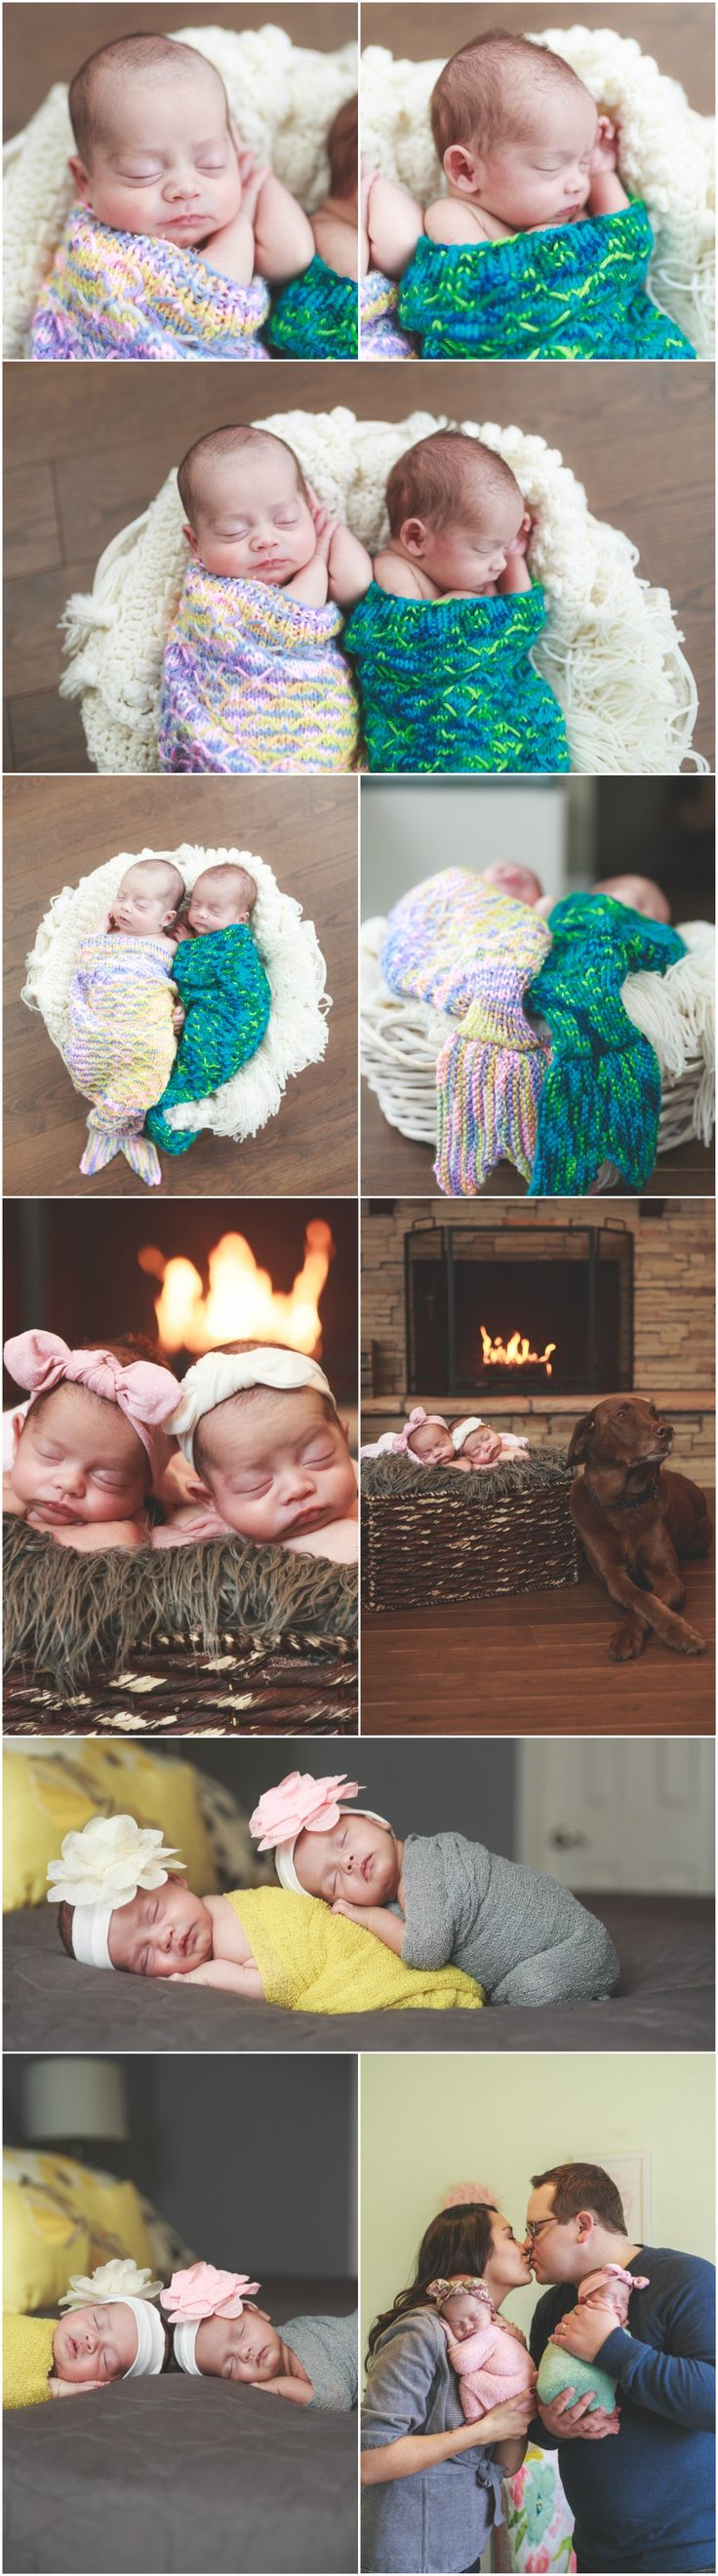 Twin Newborn Photography Ideas and Inspiration   Newborn Poses   Denver Newborn Photographers   Newborn Baby Twins Portraits